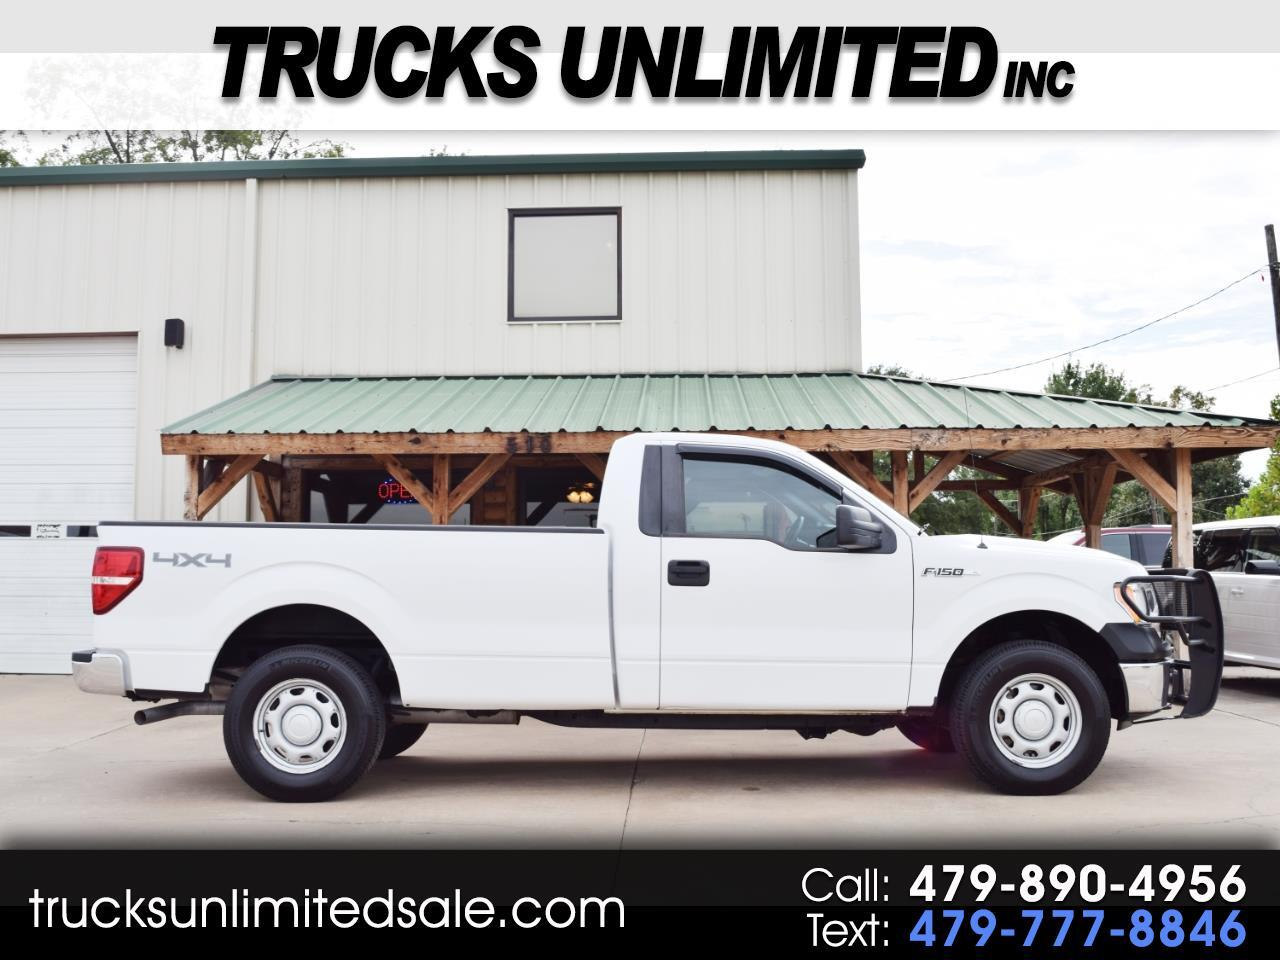 2013 Ford F-150 Regular Cab Long Bed 4WD